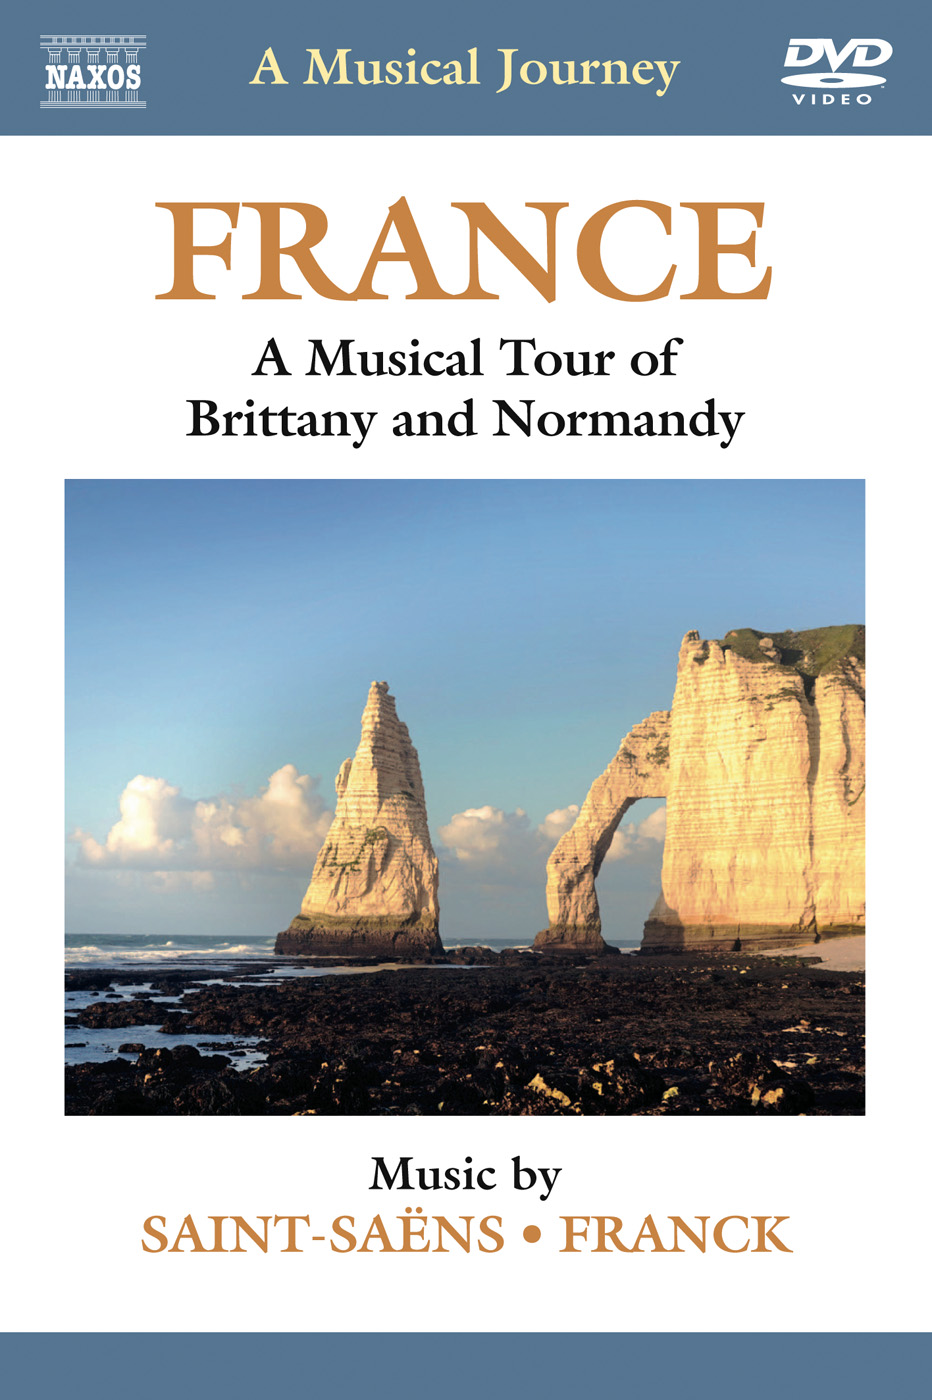 A Musical Journey: France - A Musical Tour of Brittany and Normandy